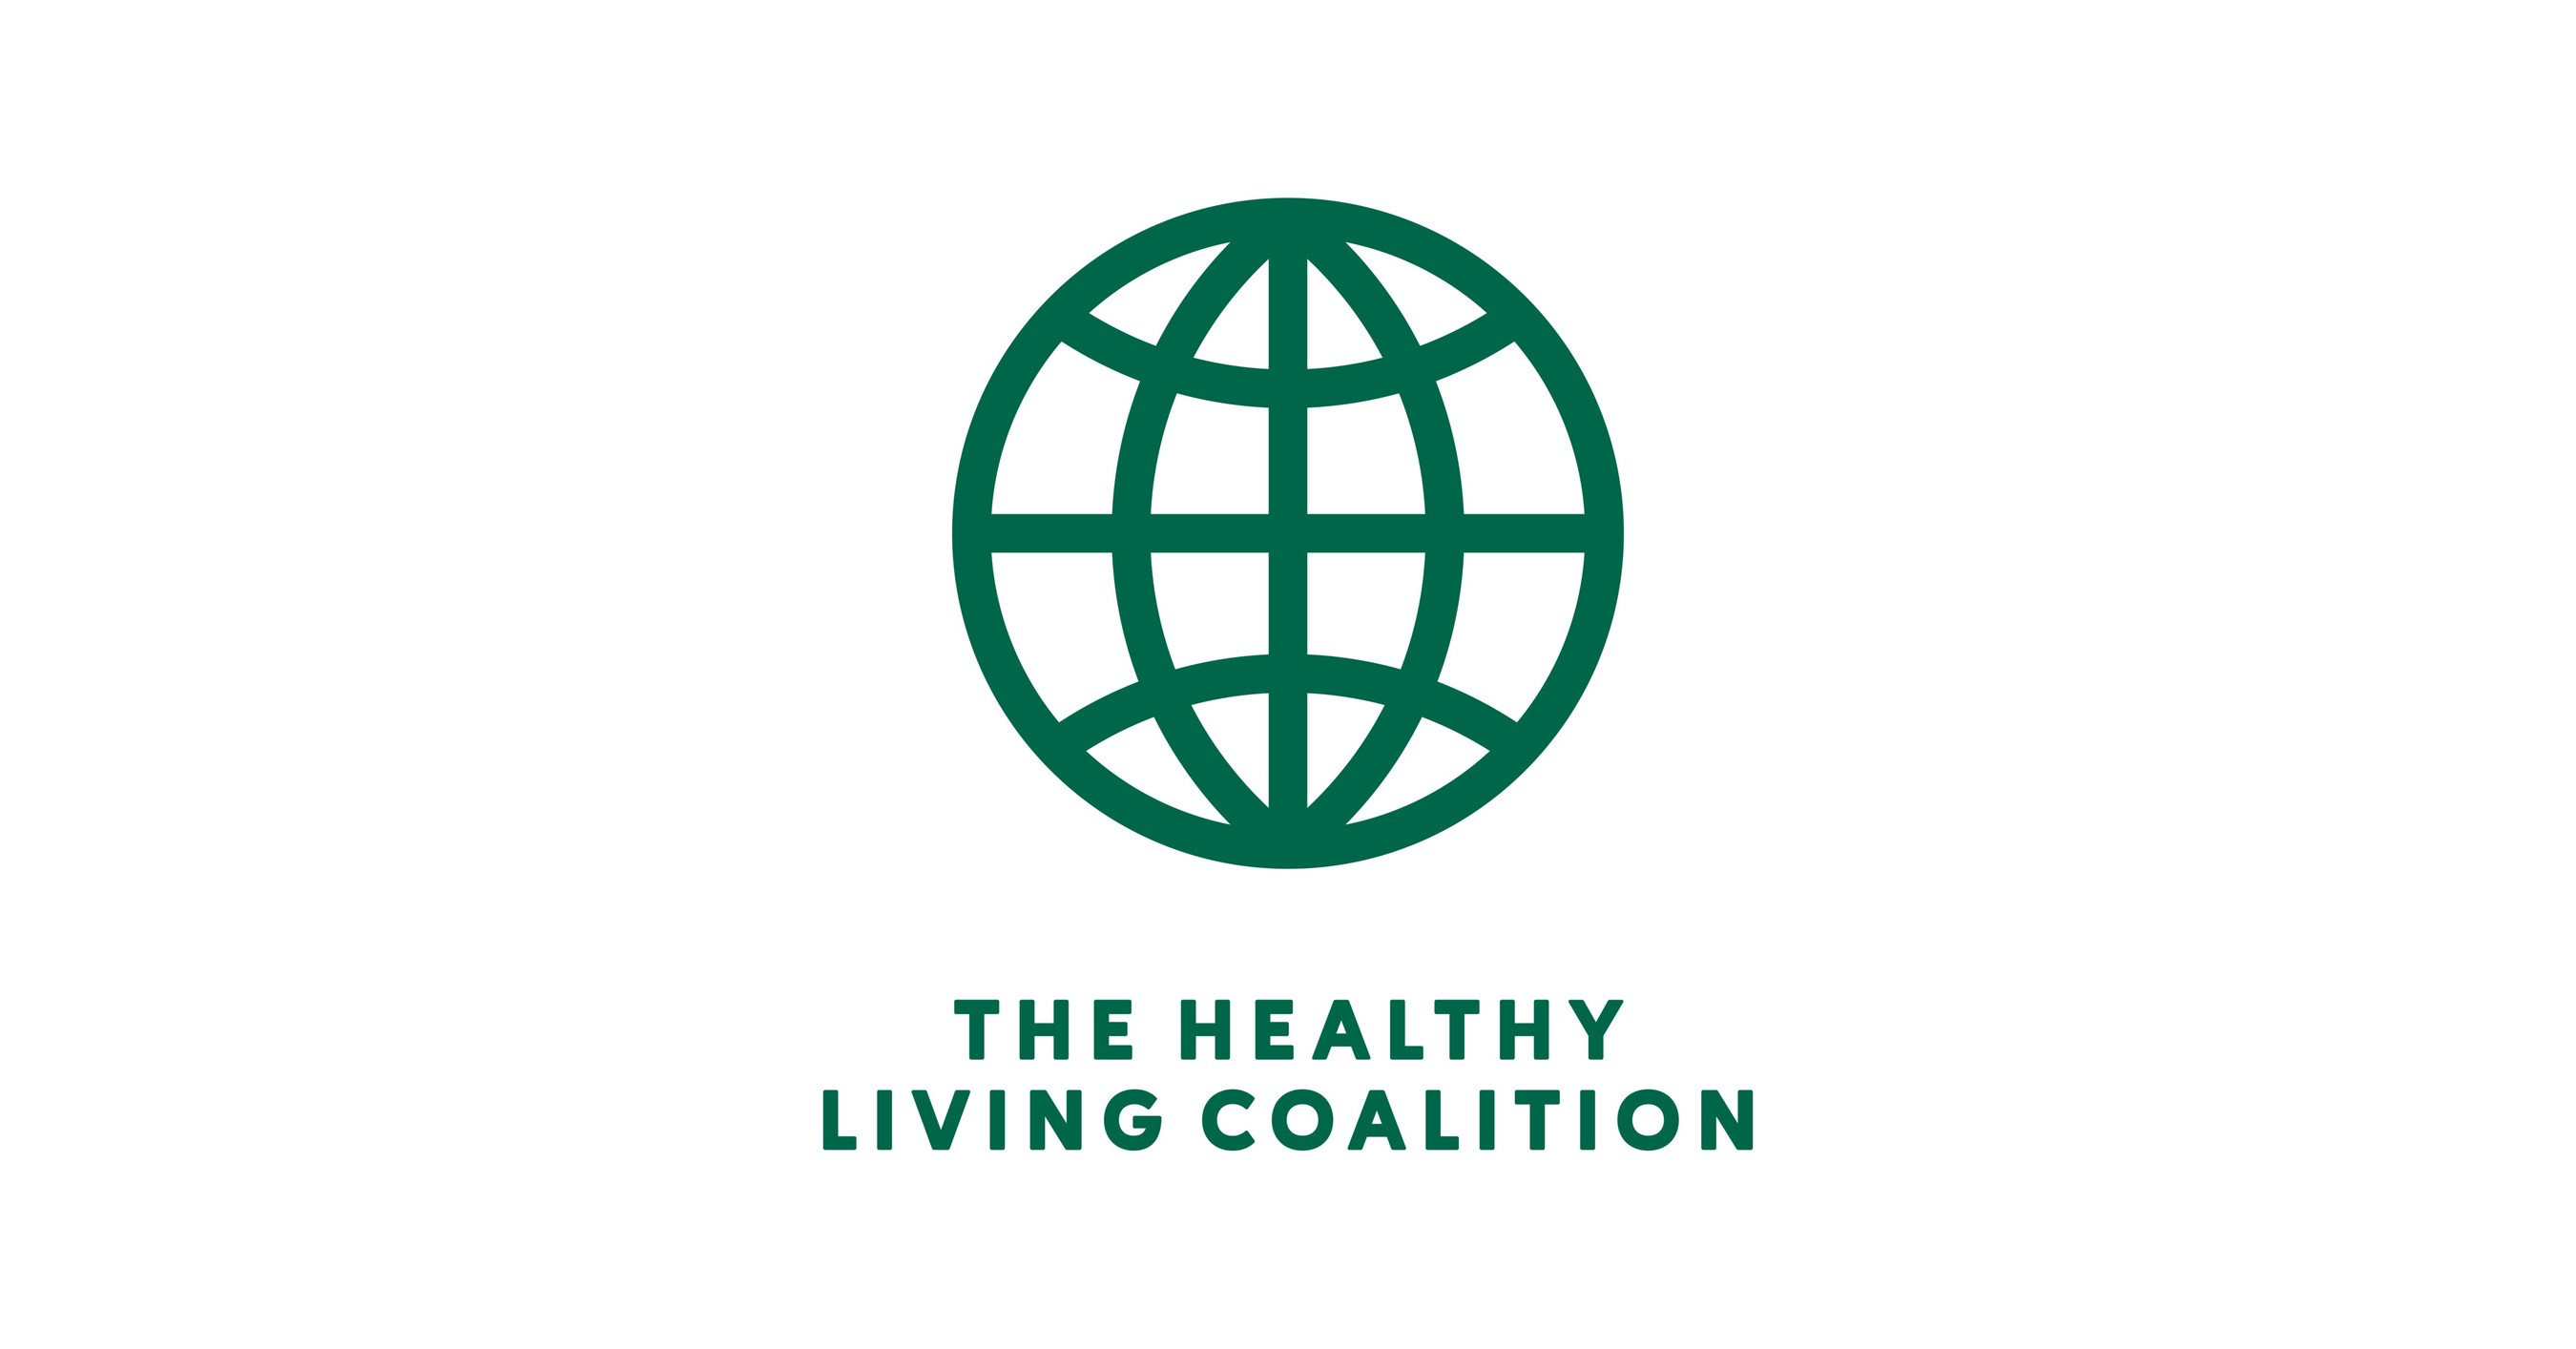 The Healthy Living Coalition Launches to Unite Business Leadership and Accelerate Solutions That Address Global Nutrition and Food Insecurity - PRNewswire